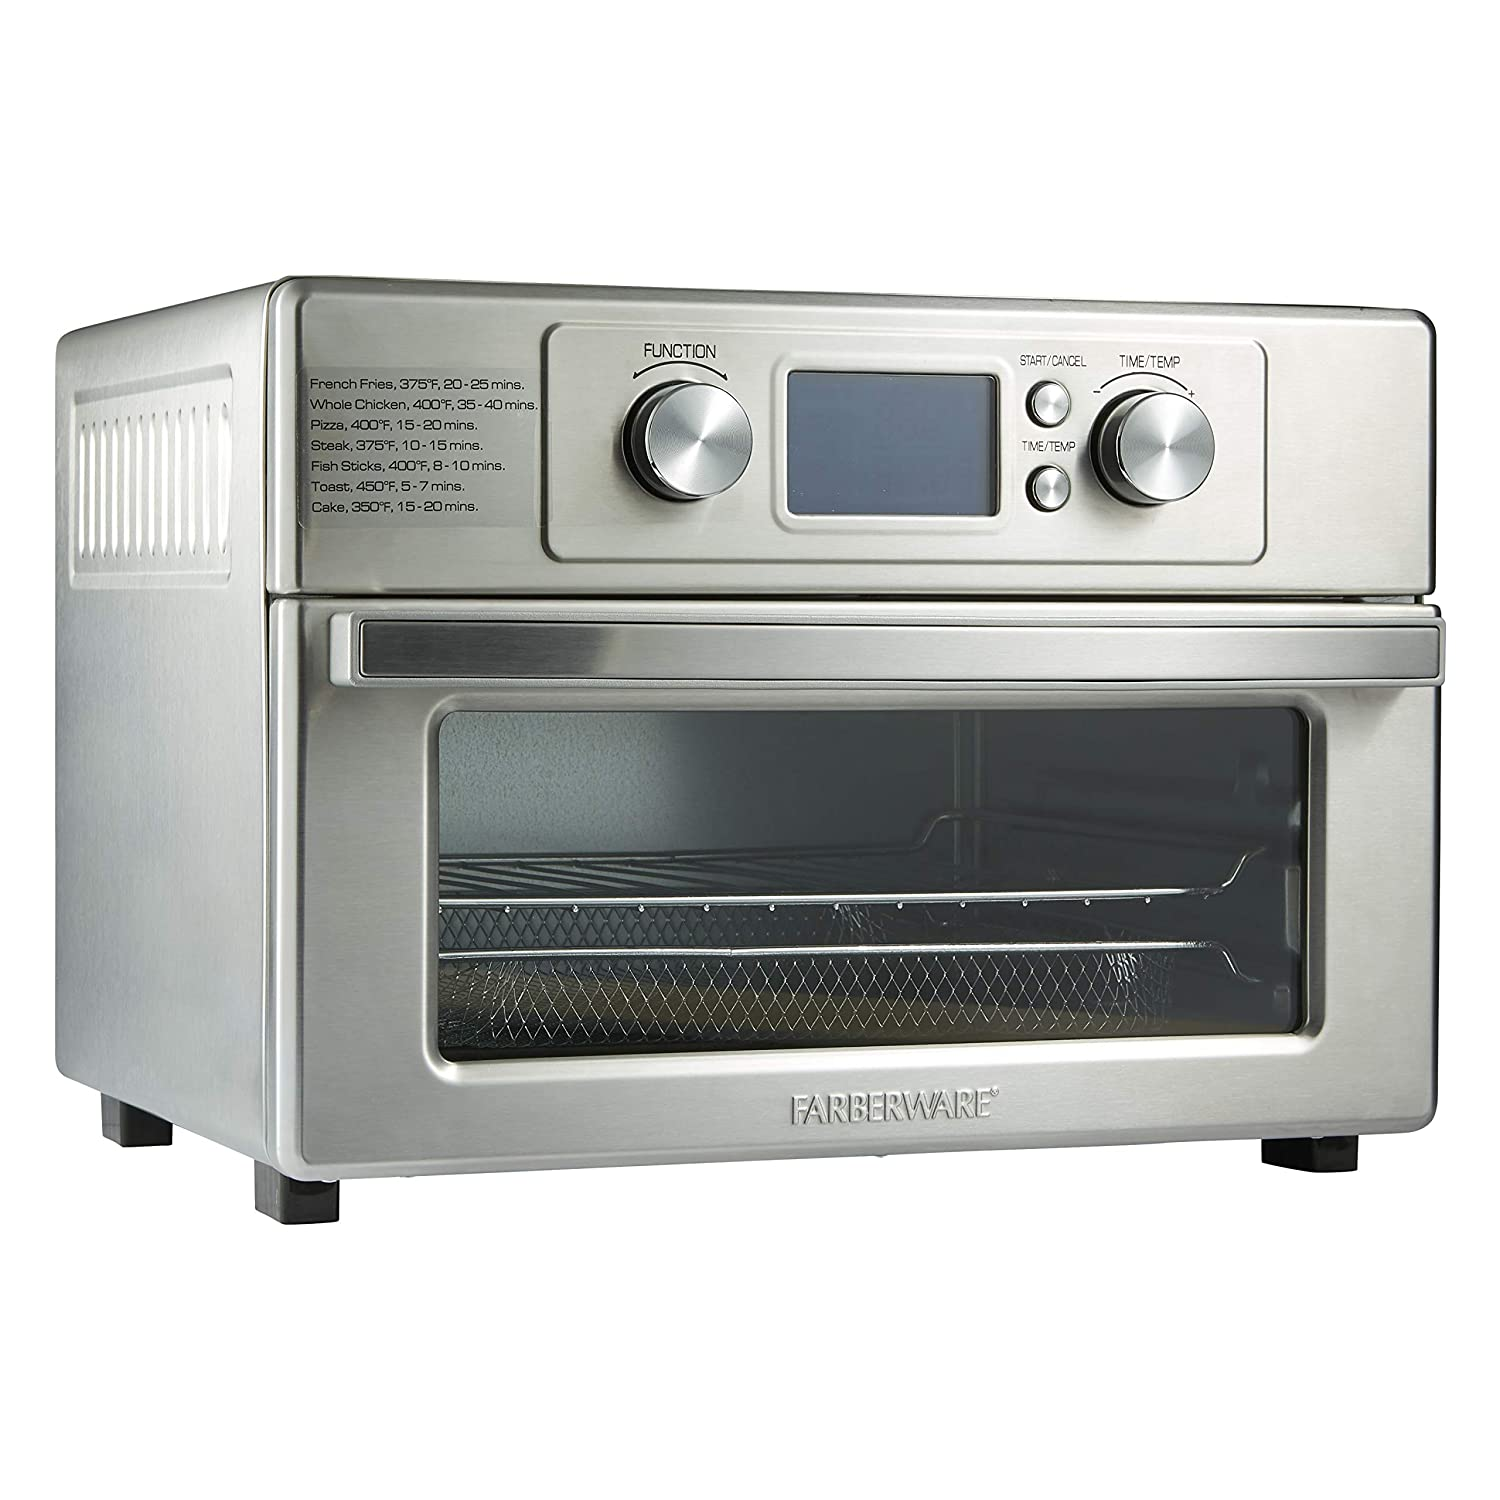 Farberware Air Fryer Toaster Oven – No Oil, No Splatter, No Mess